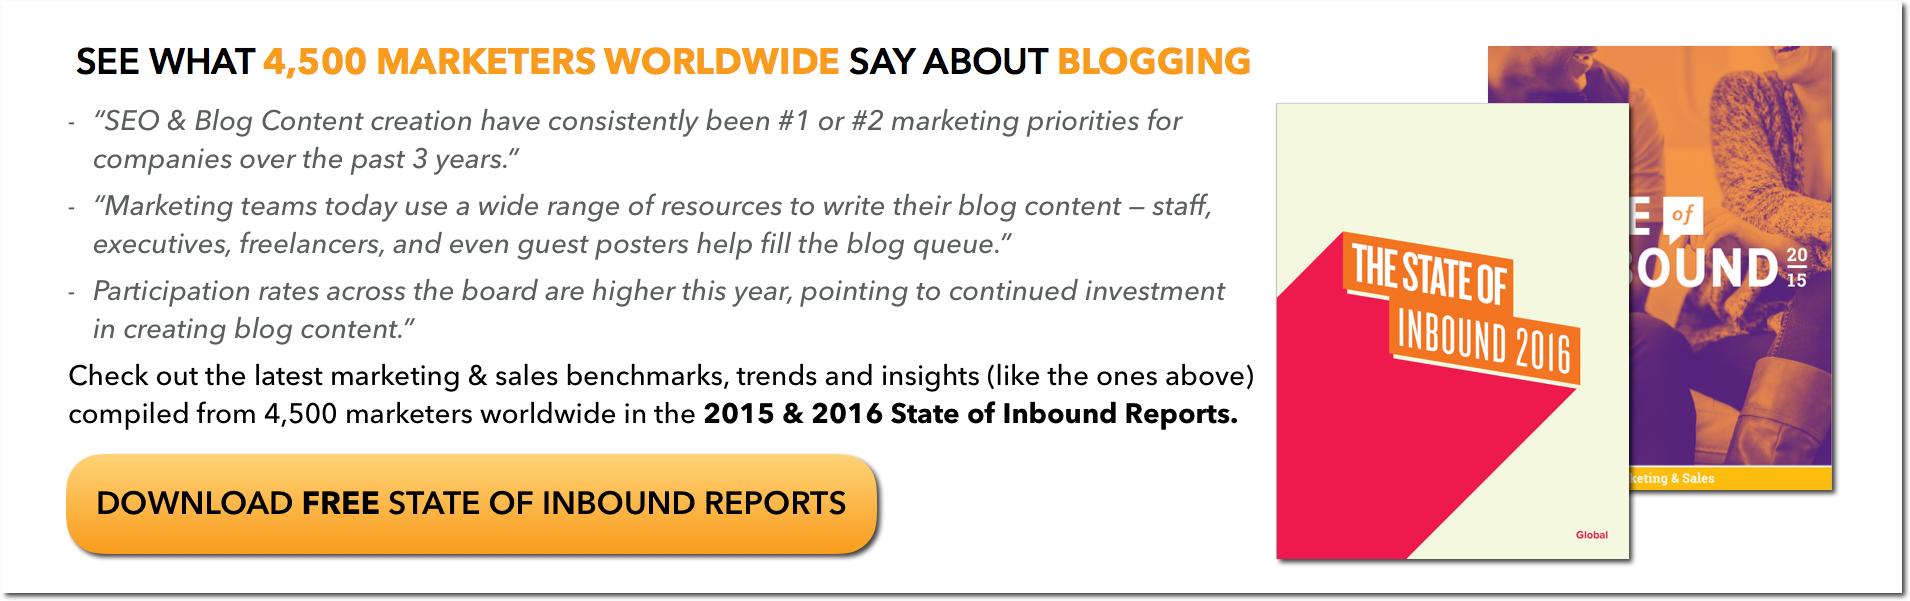 State-of-Inbound-Reports-CTA-Blogging